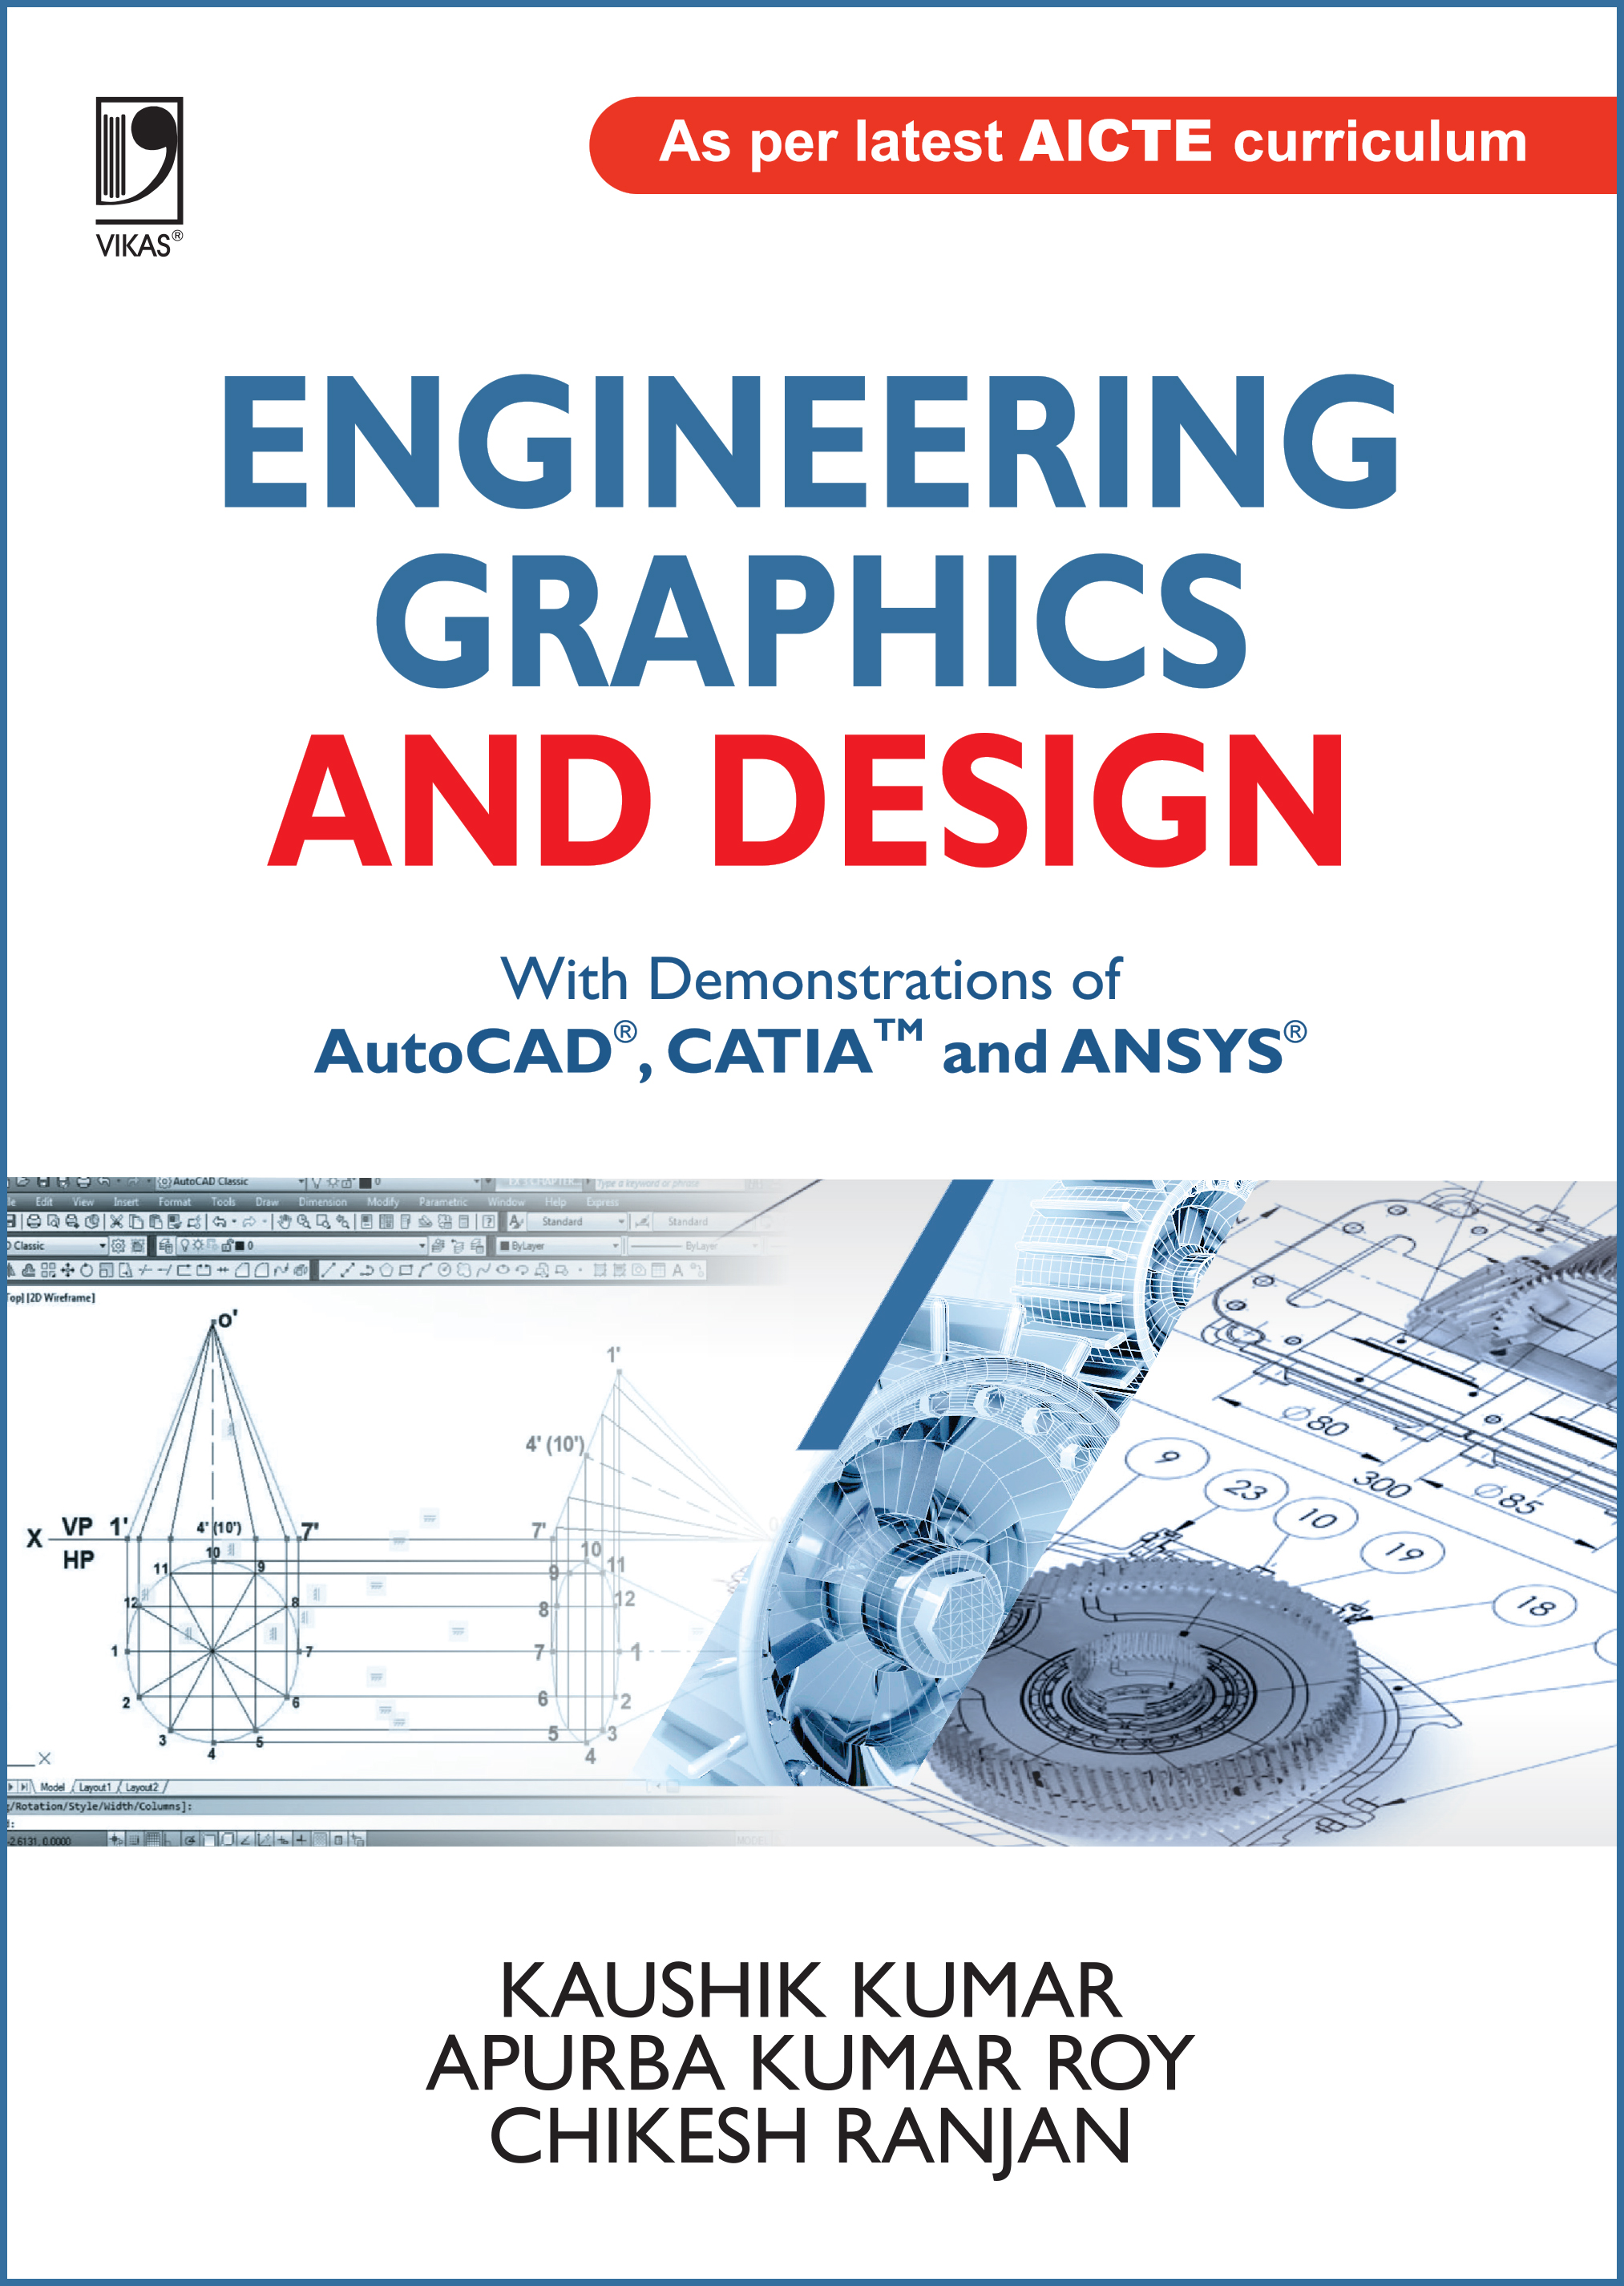 Engineering Graphics and Design: With Demonstrations of AutoCAD, CATIA & ANSYS